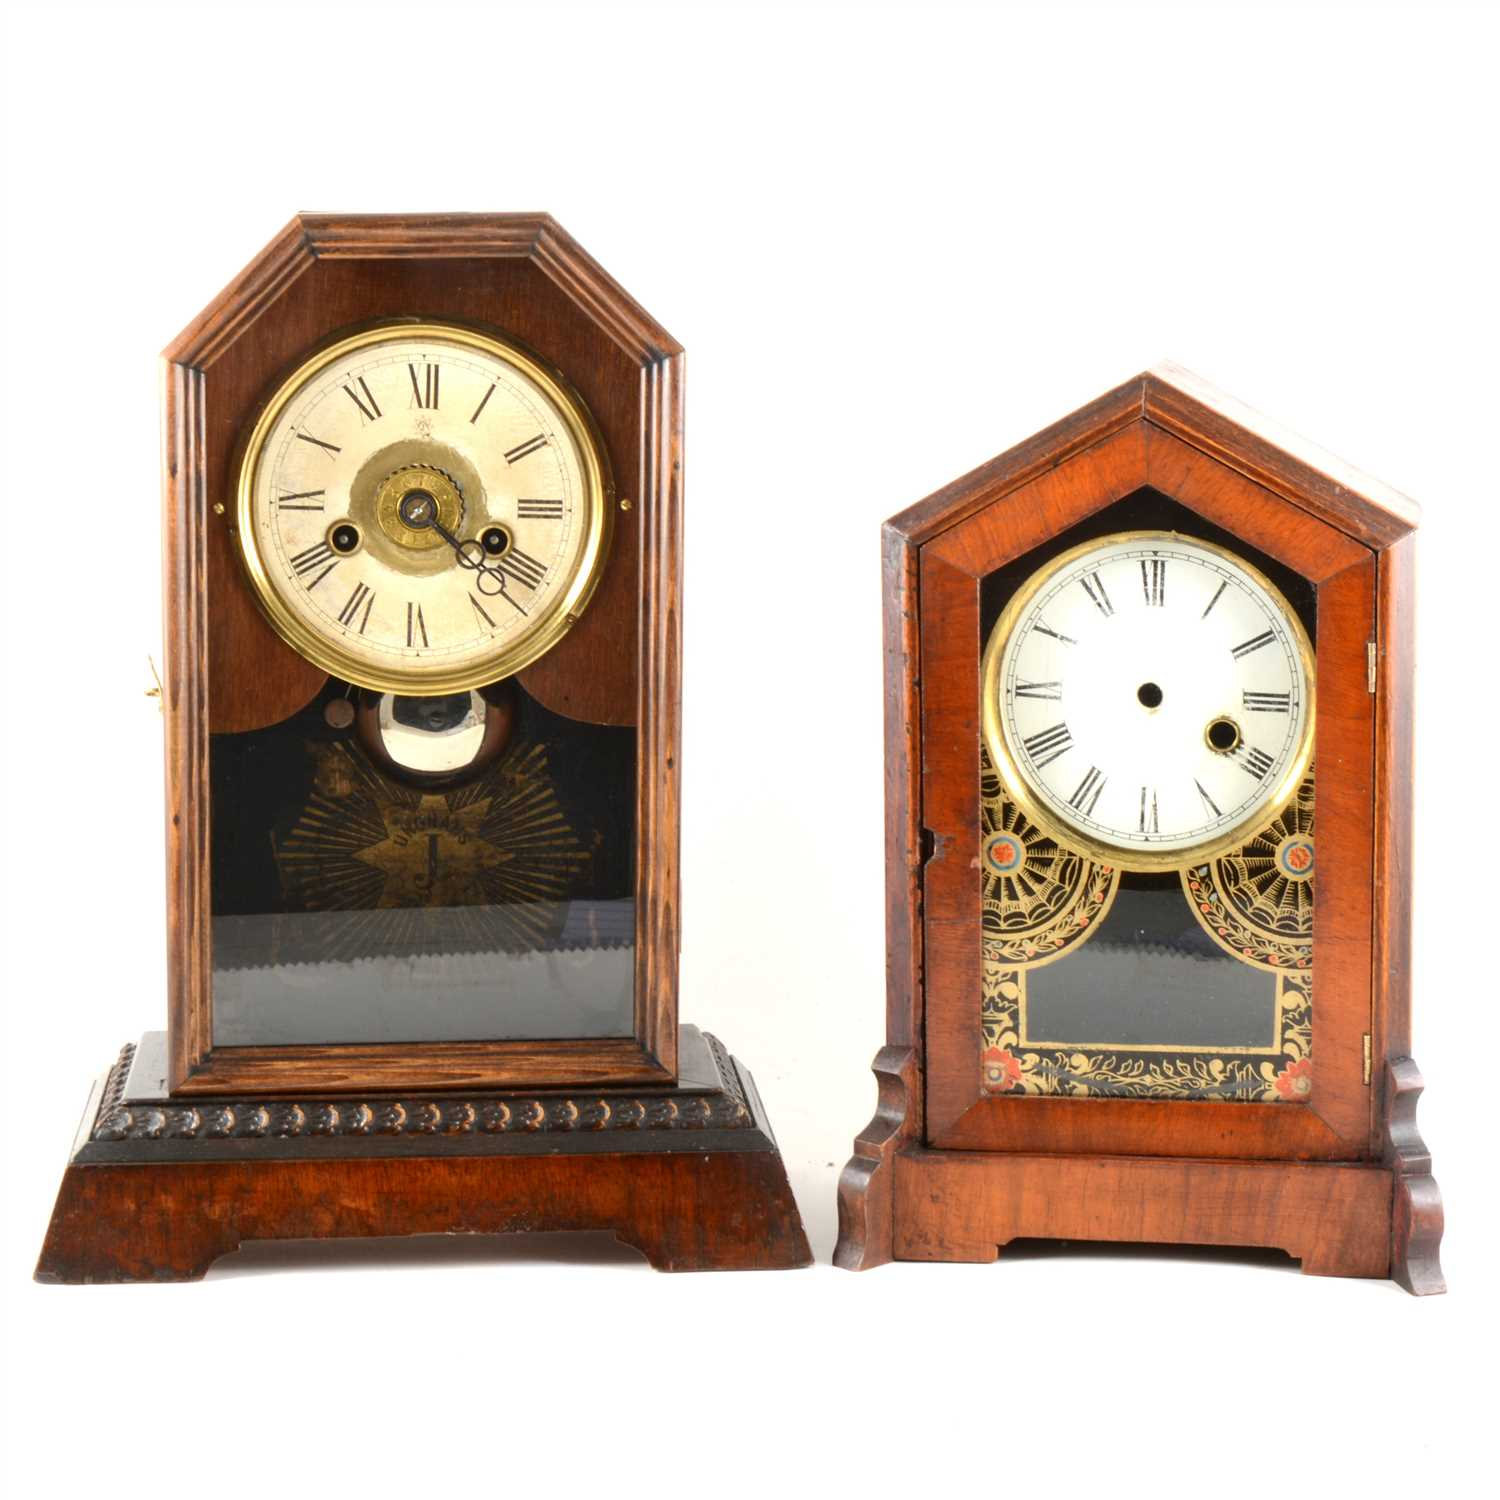 Lot 44-Two wooden shelf clocks and the Price Guide to Collectable Clocks.